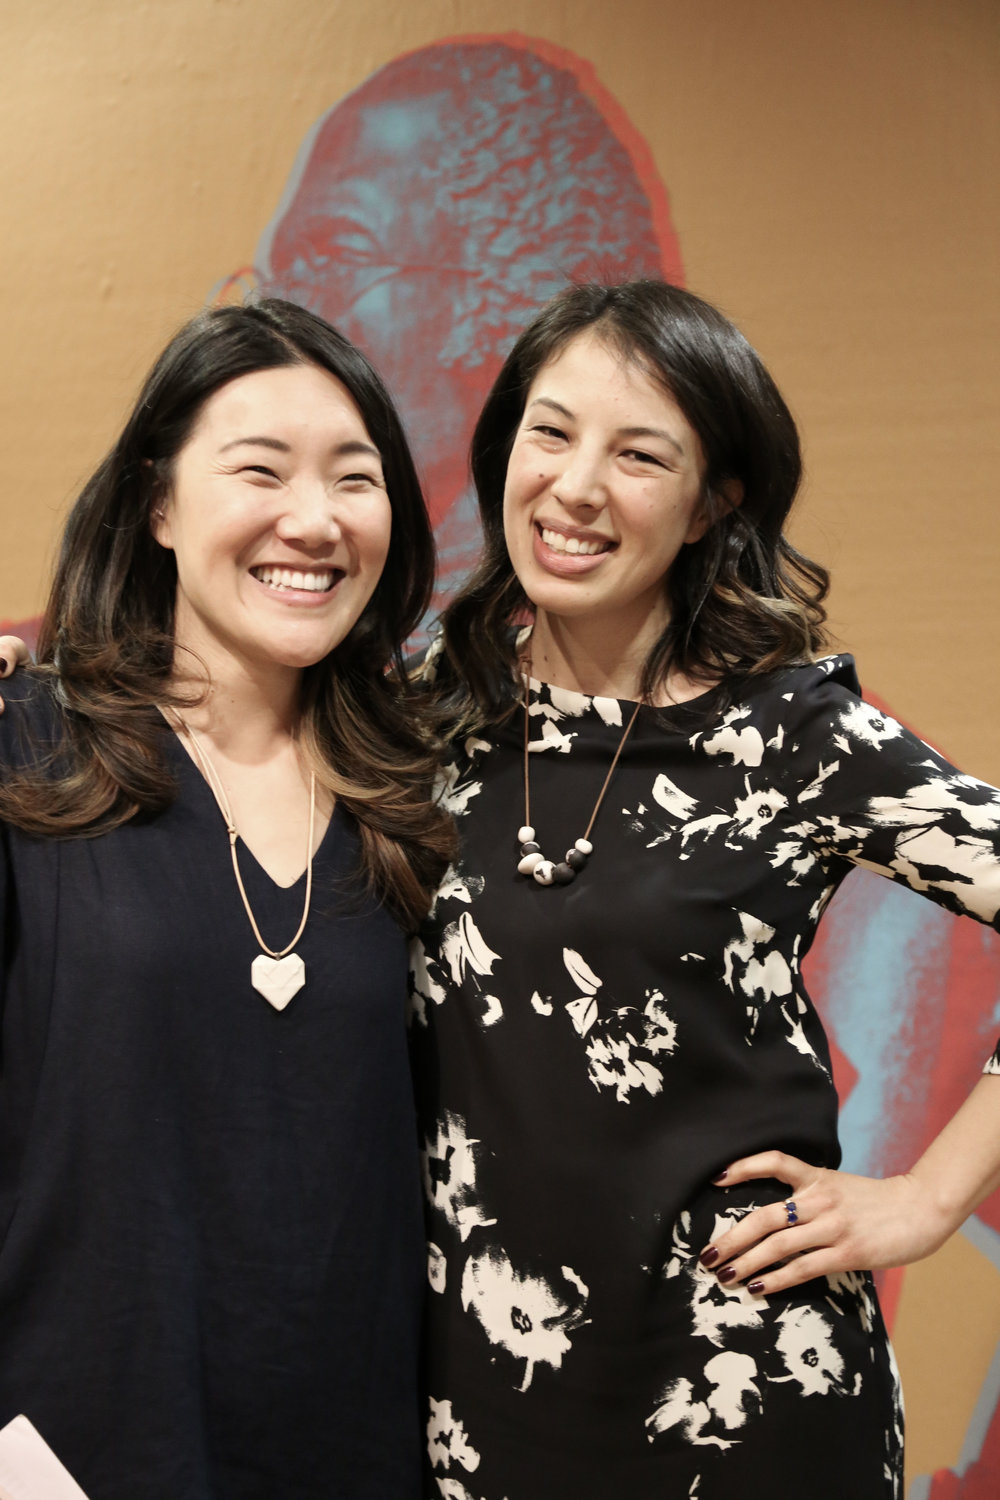 Me and Diana, taken at our Day of Remembrance event at the California Historical Society (rocking our  Alyson Iwamoto  necklaces!) Photo by Dena Paez.